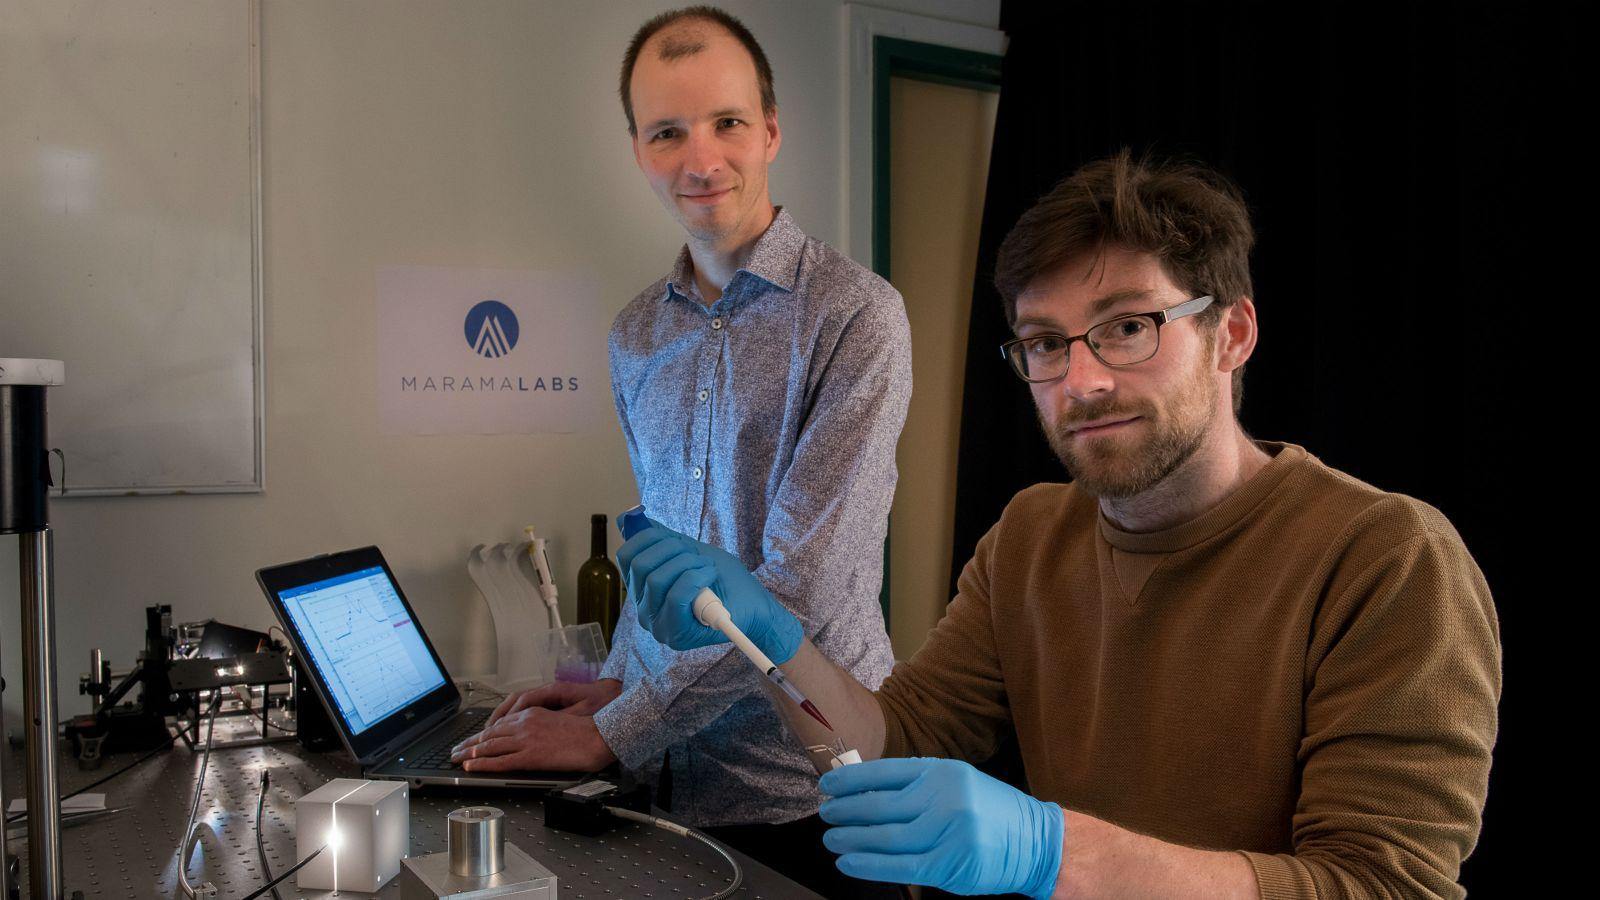 Mattias Meyer stands at a laptop with Brendan Darby sitting at the desk. Brendan wears blue gloves and is holding lab equipment. MaramaLabs and the logo are in the background.